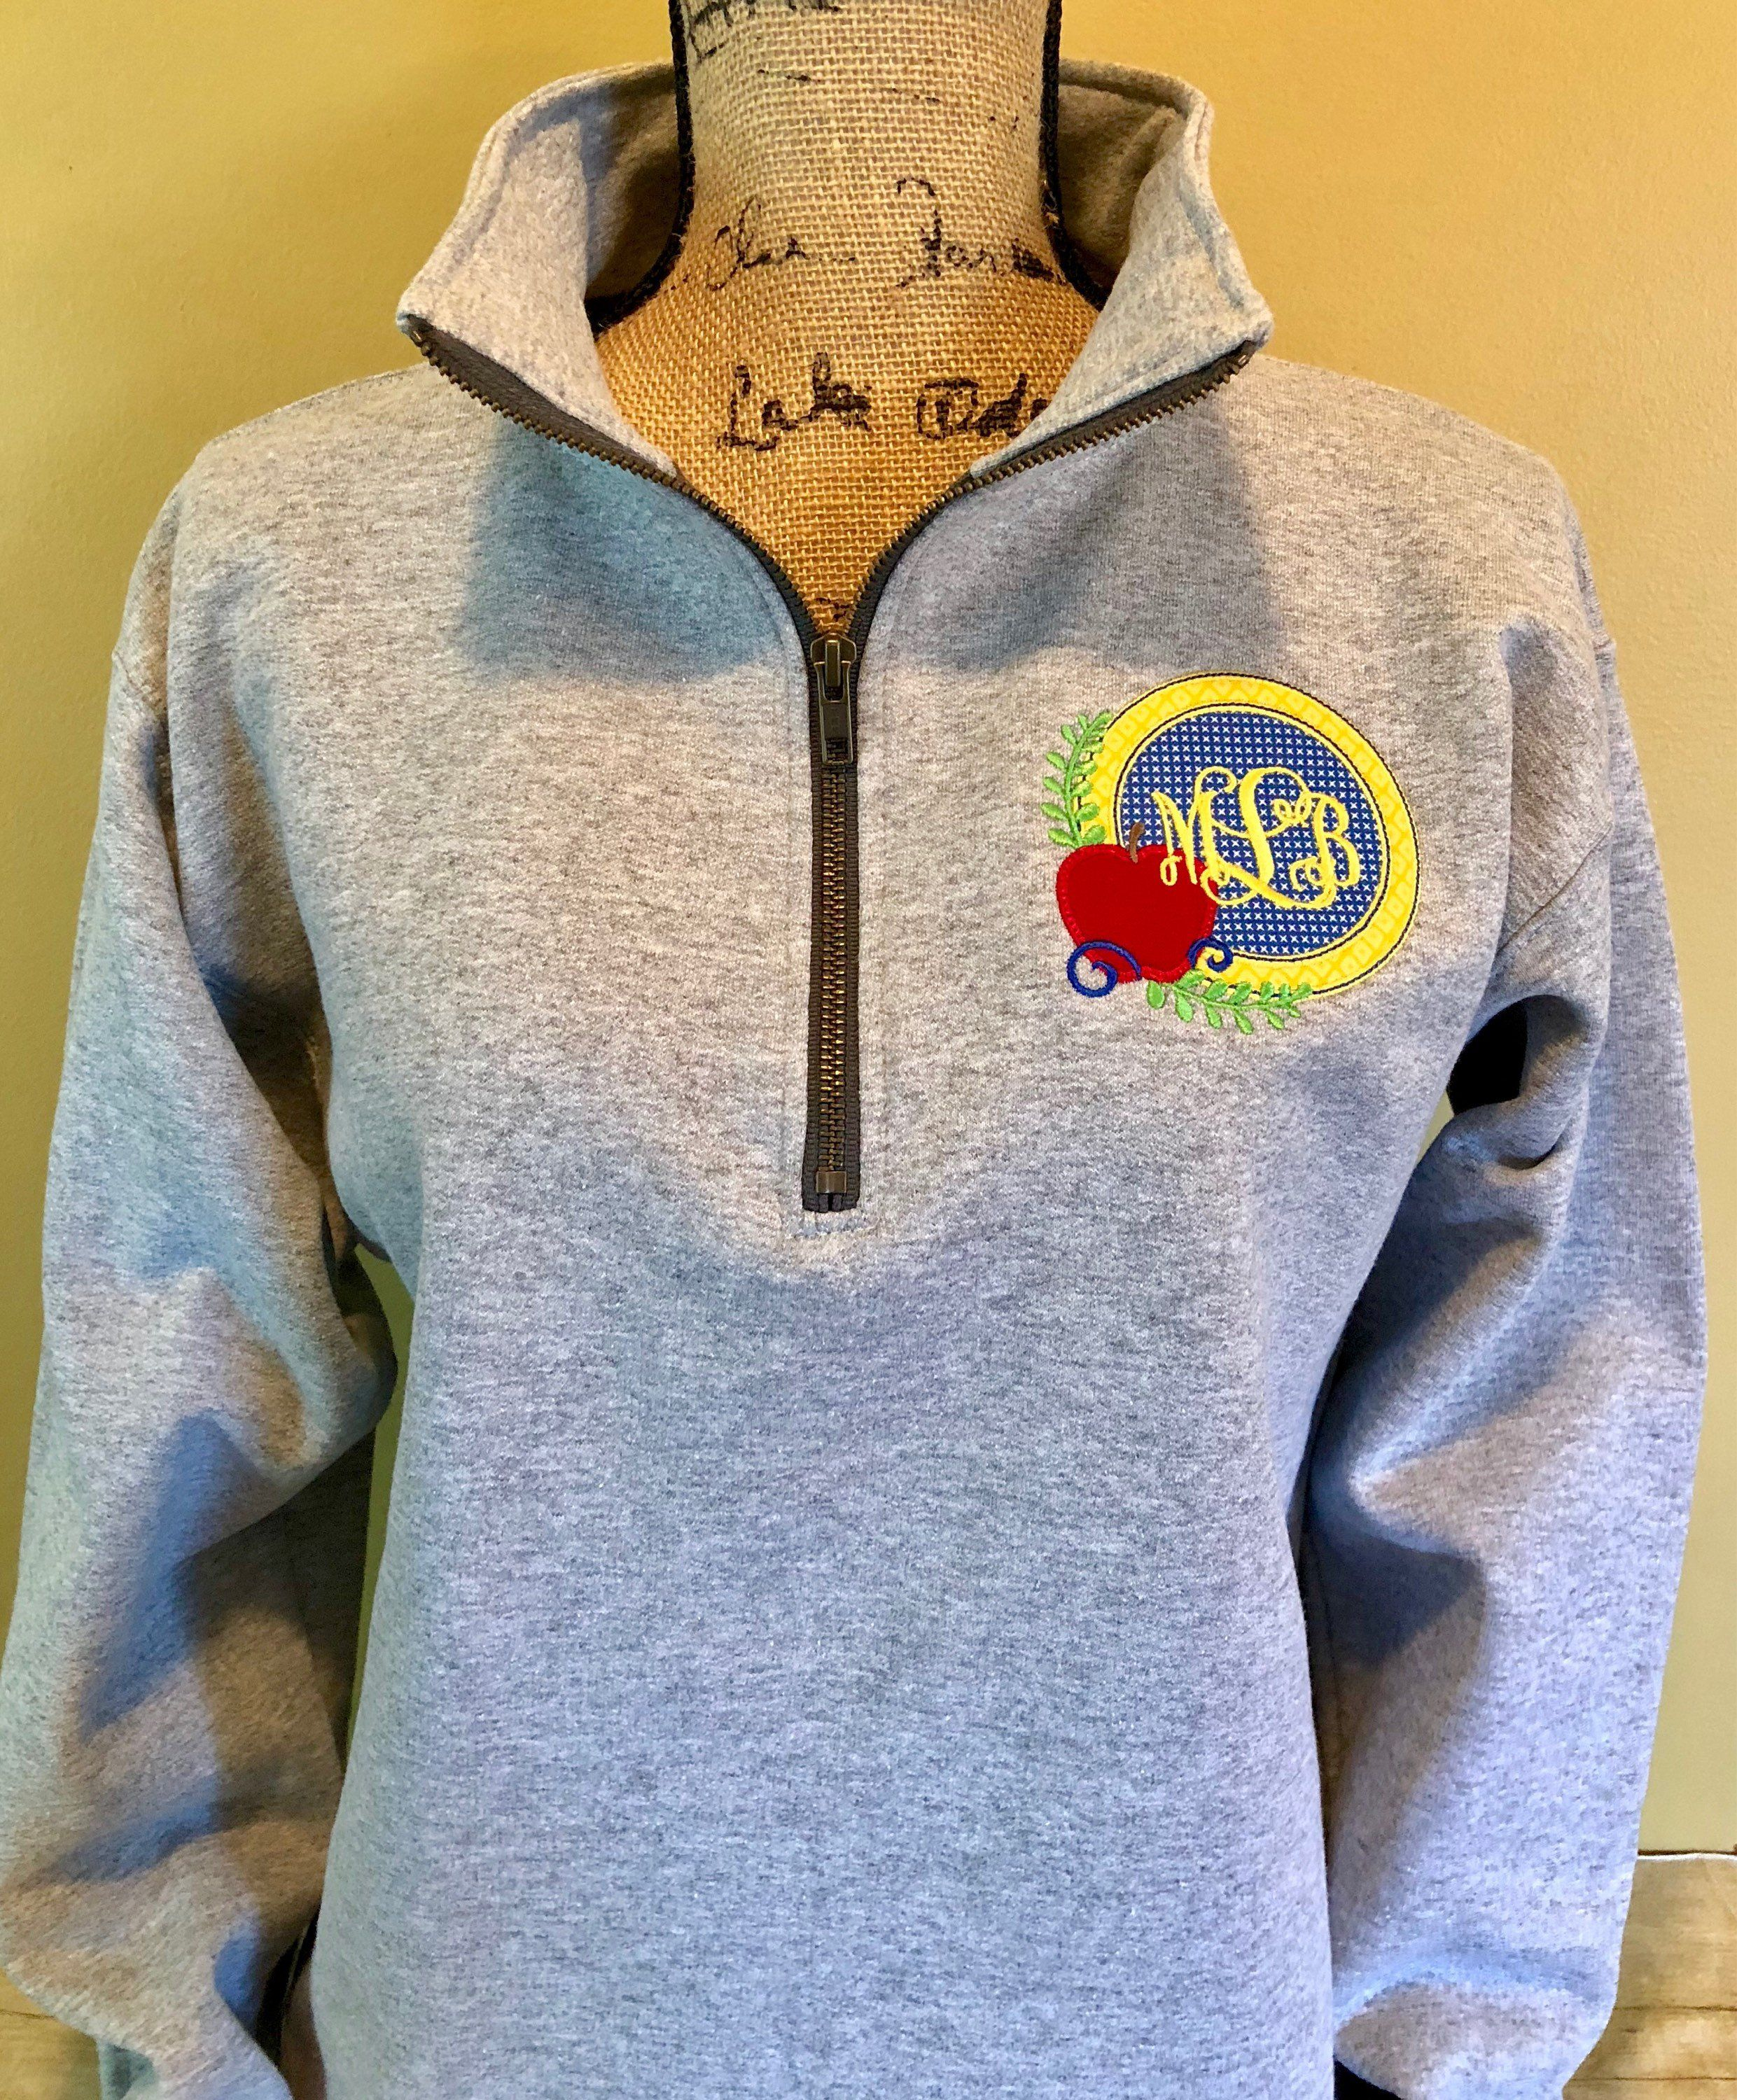 ad003369 Teacher gift, school jacket, pullover quarter zip, apple monogram,  embroidered school shirt, customize school colors plus size available by ...